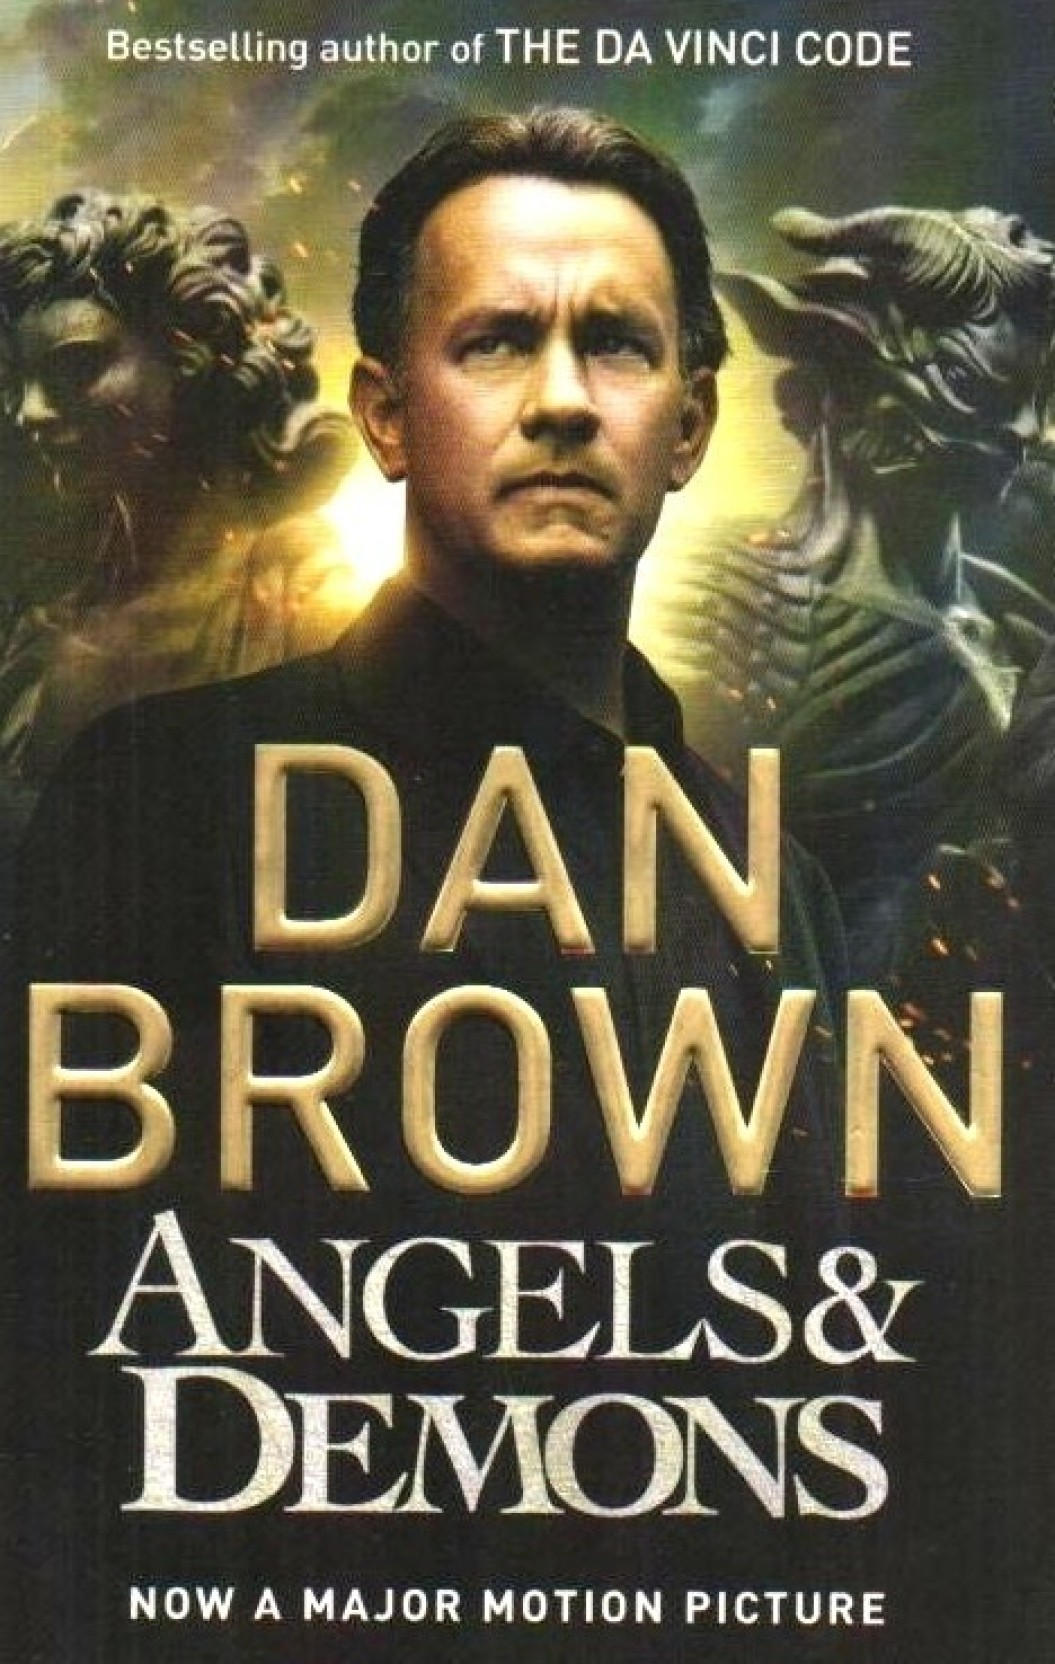 Angels and demons buy angels and demons by dan brown online at on offer buycottarizona